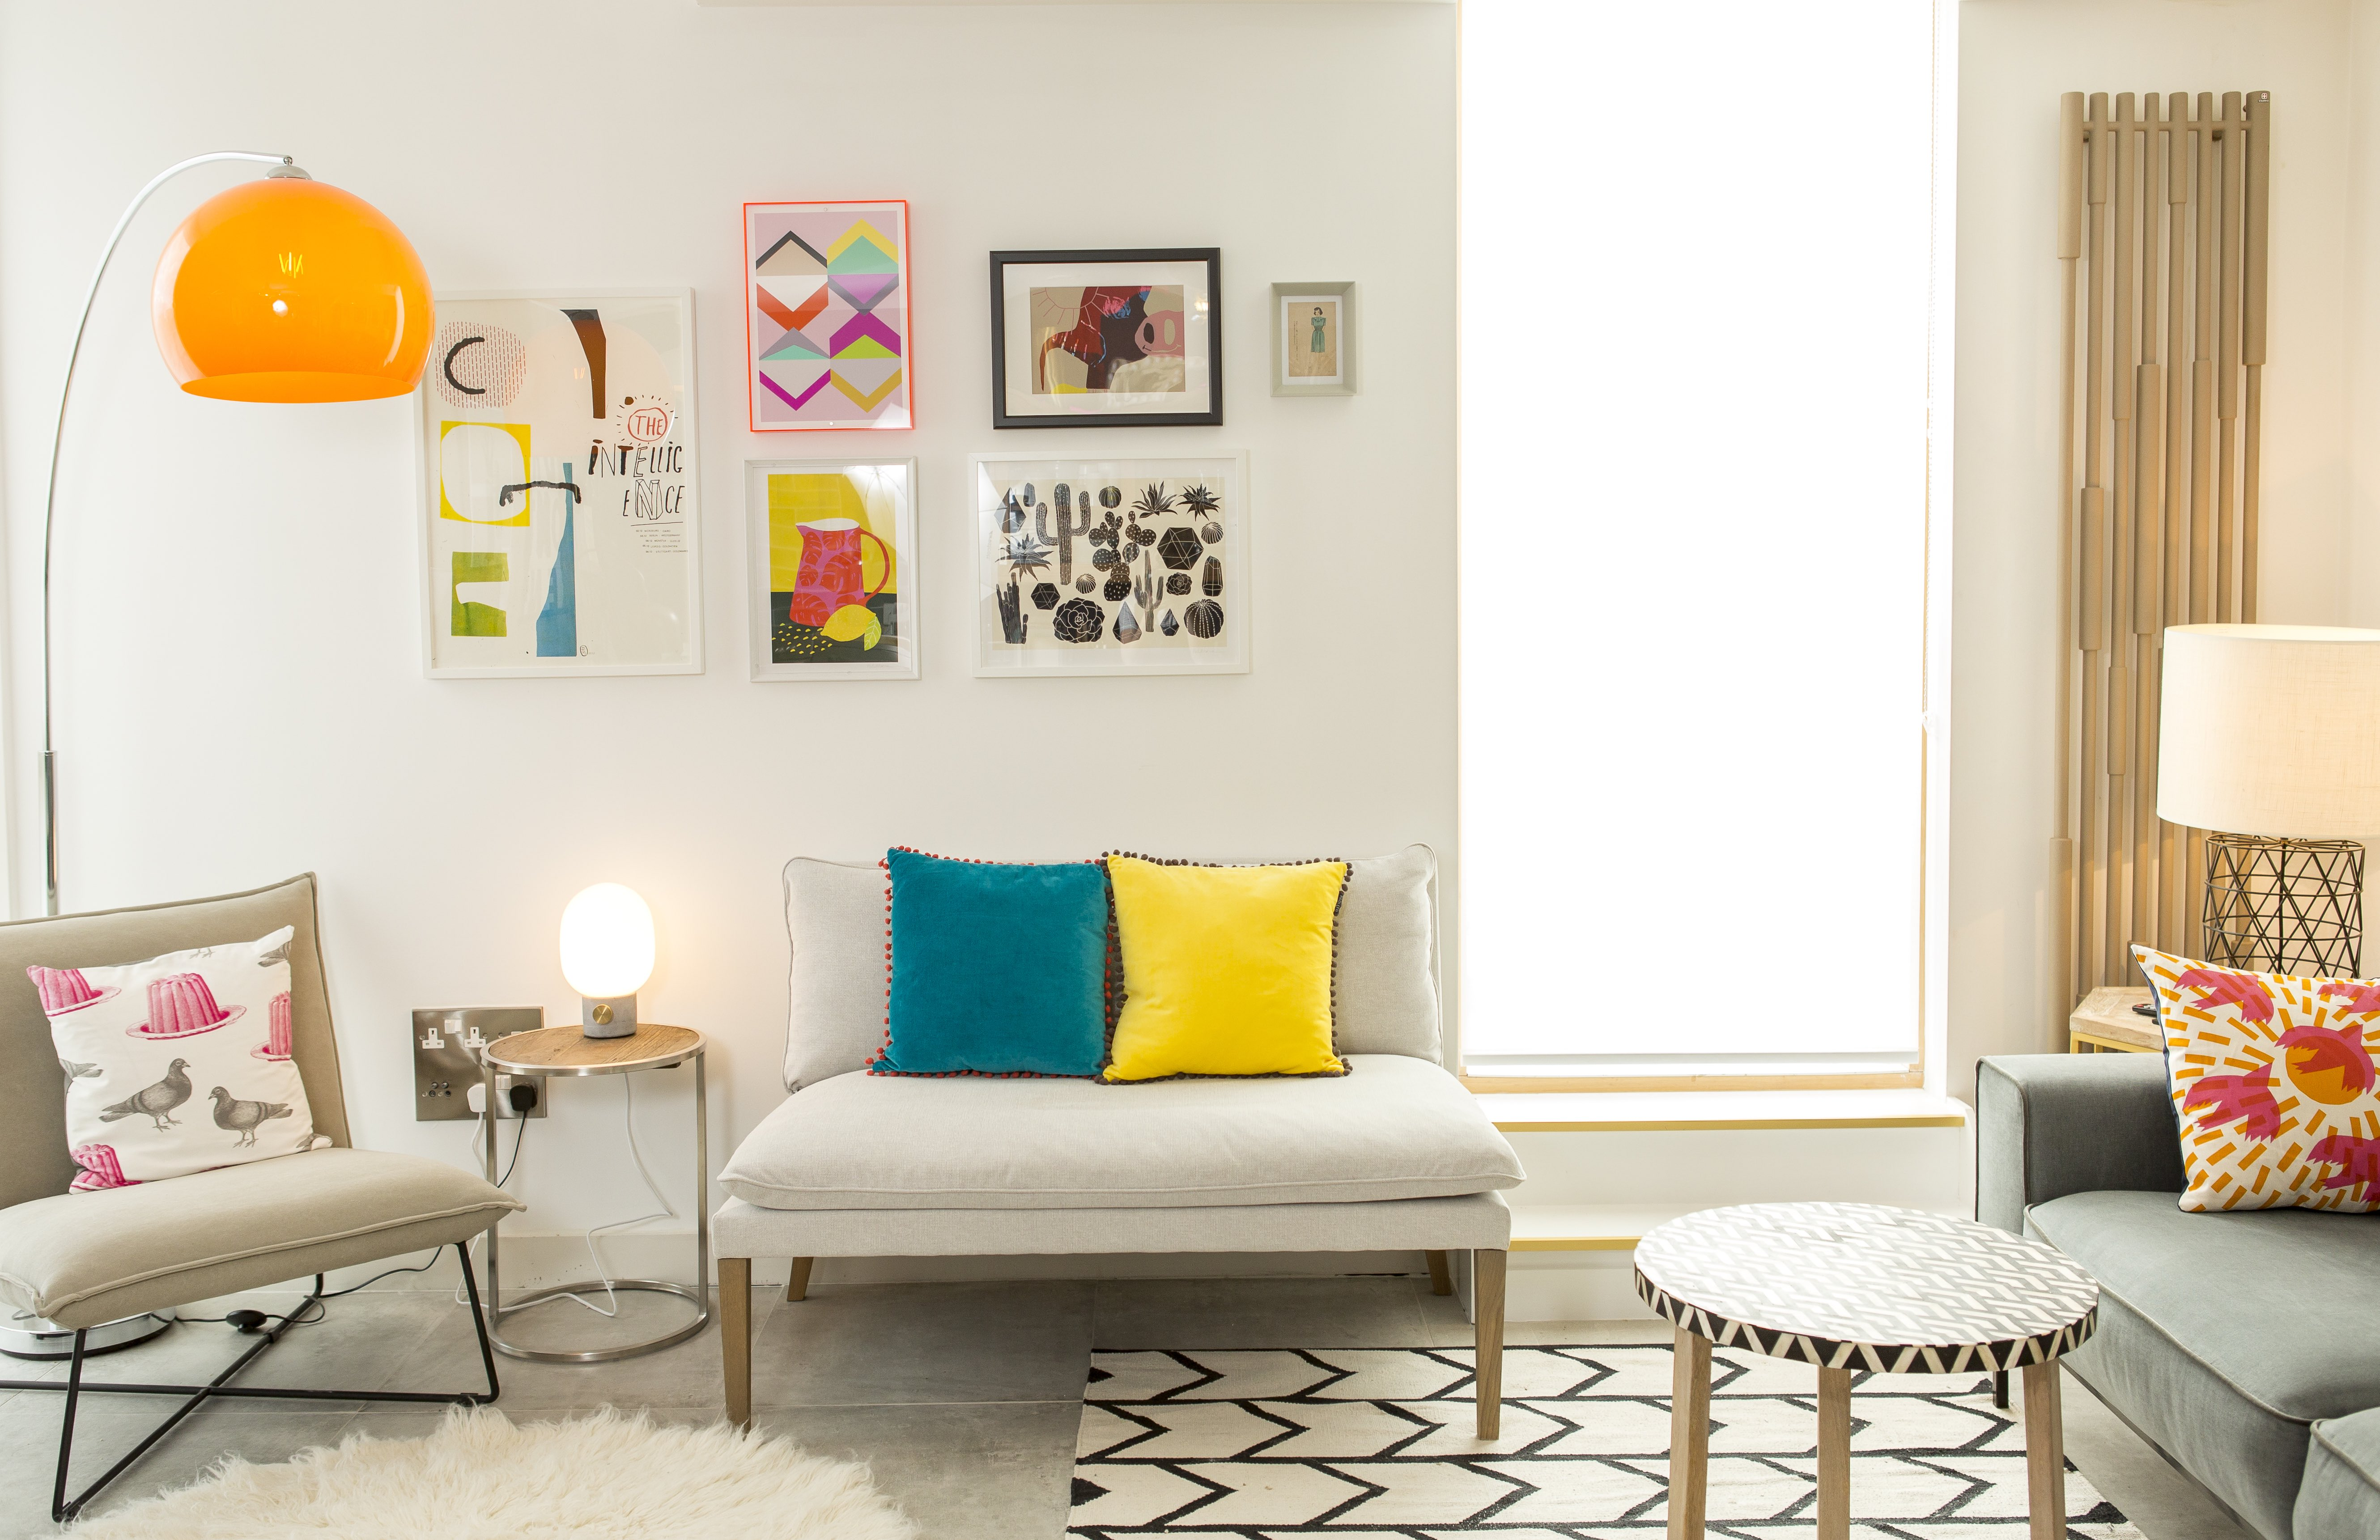 The Top 10 Hashtags To Follow for Home Inspiration